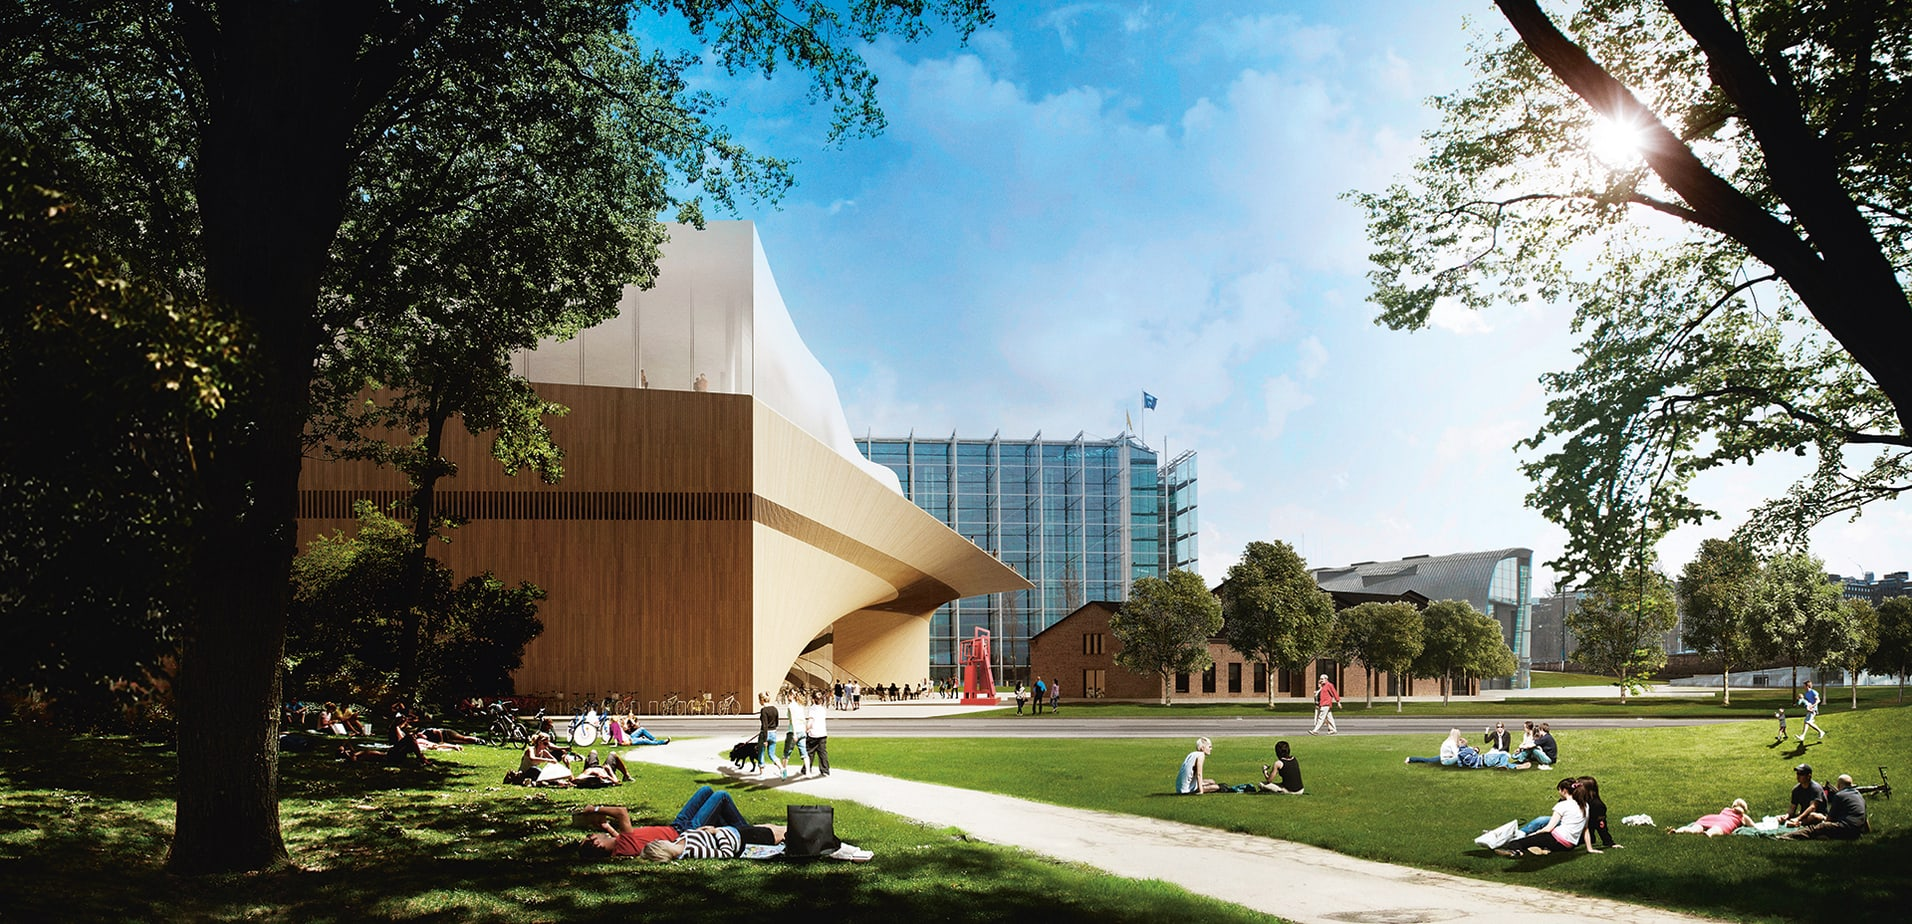 The Color Club - Helsinki Central Library by ALA park view © ALA Architects Ltd 1